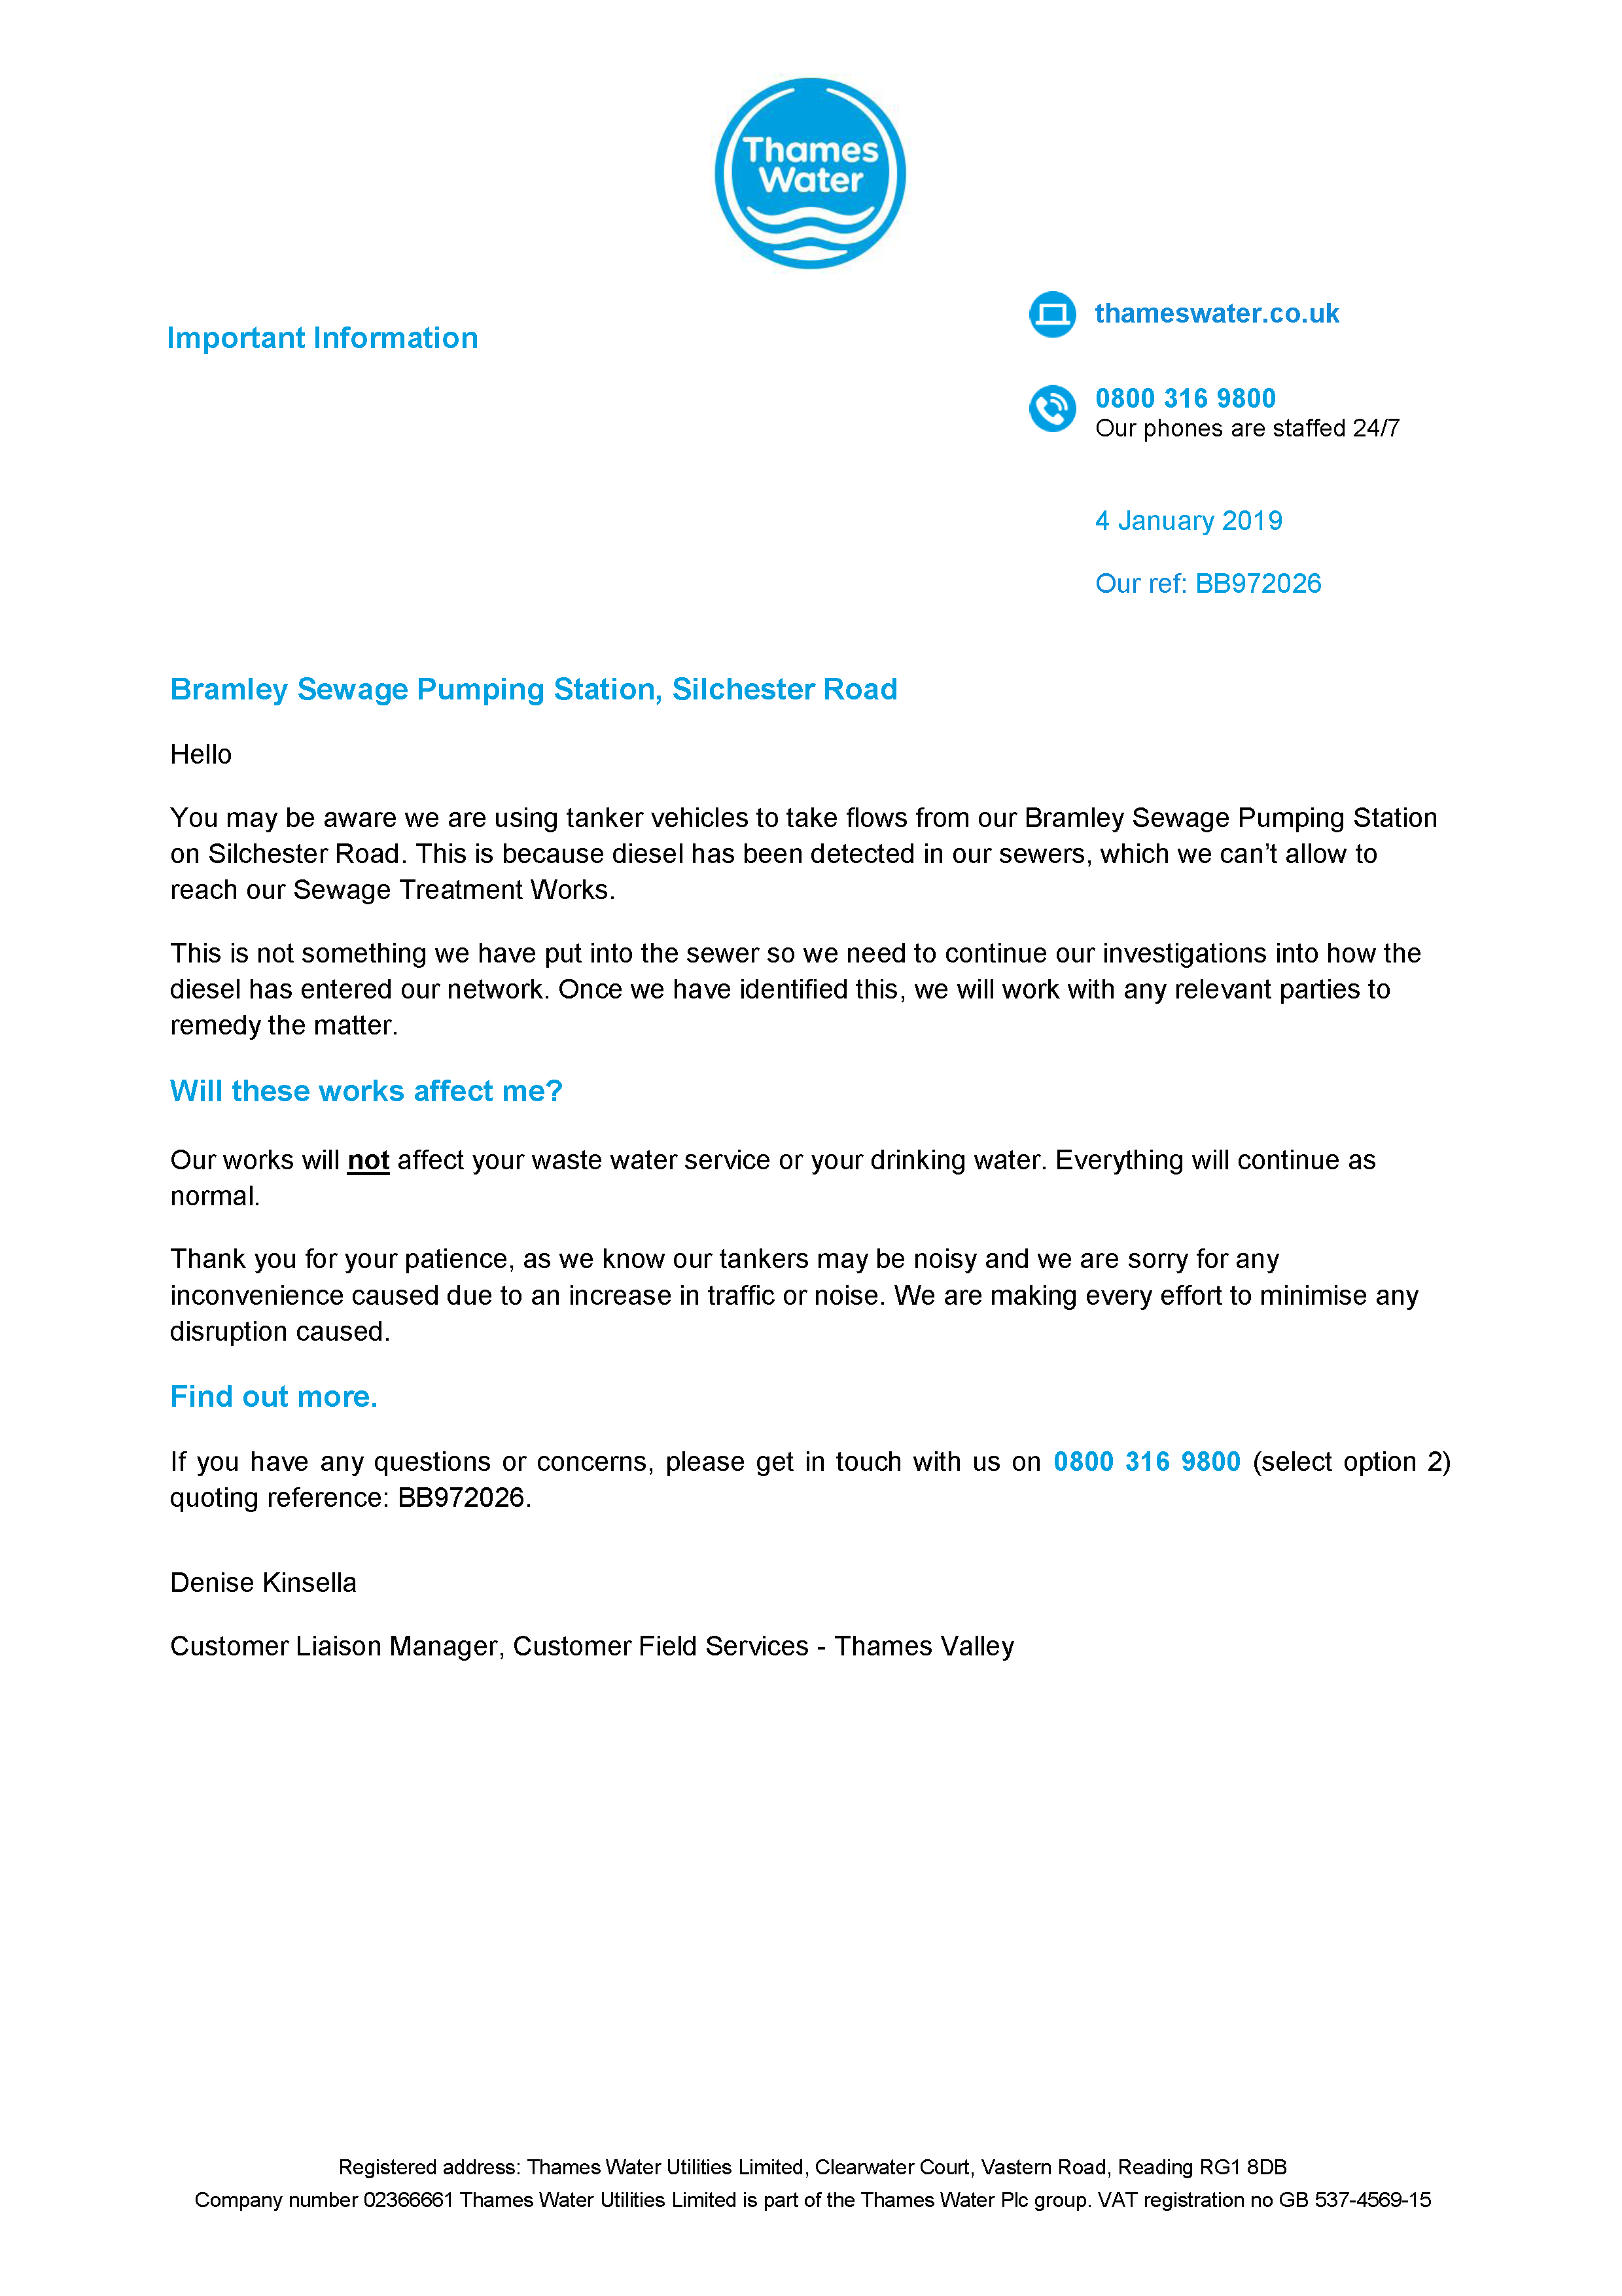 Letter from Thames Water - 04JAN2019